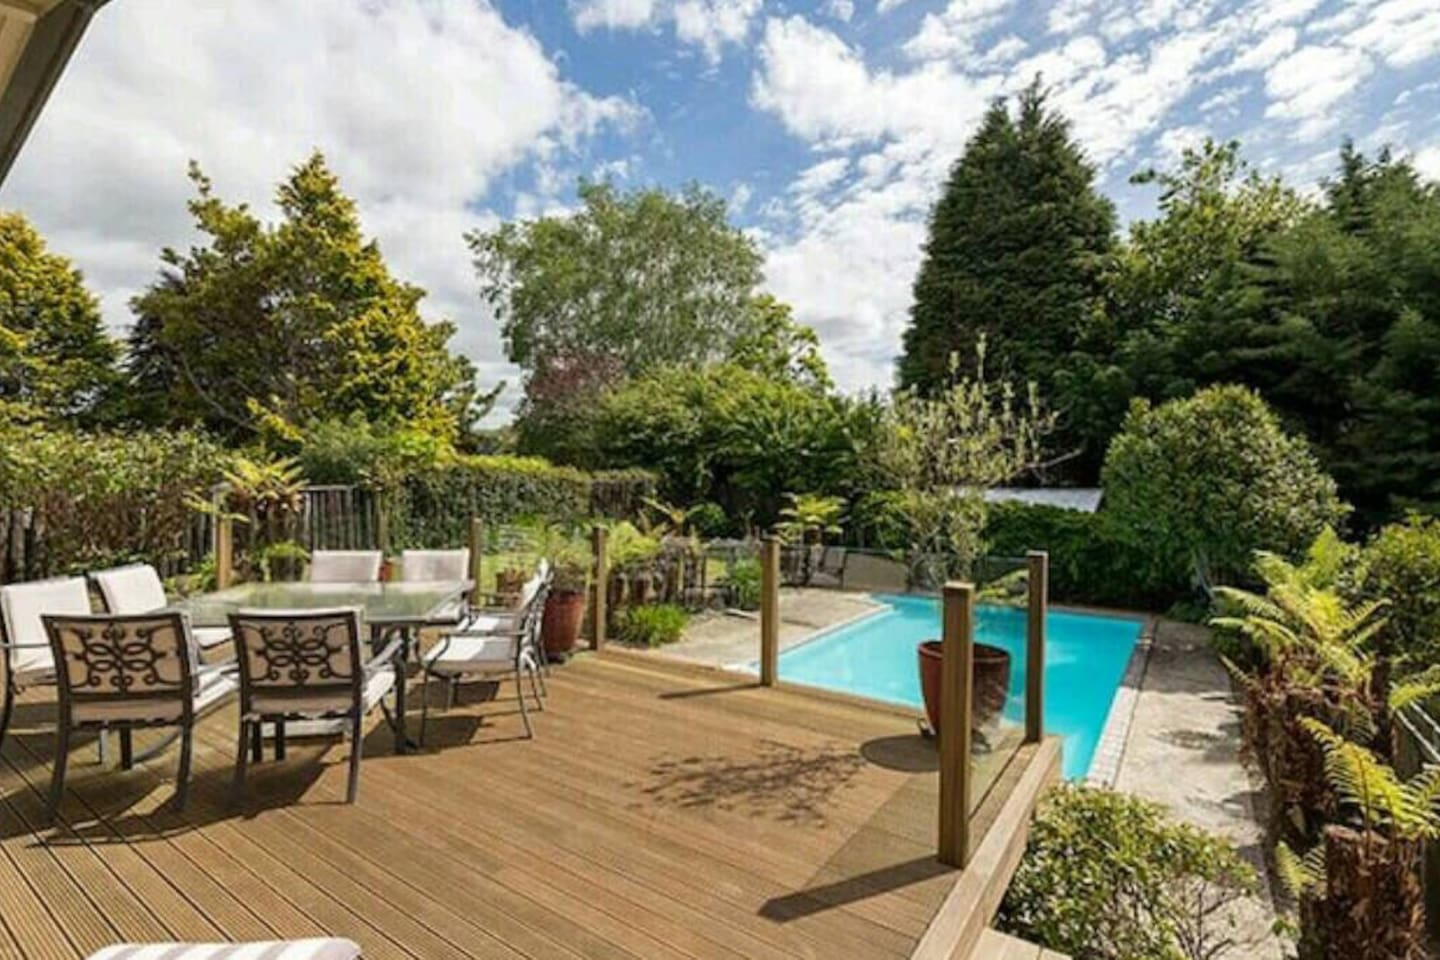 Best airbnbs in Rotorua for families featured by top family travel blogger, Marcie in Mommyland: The pool is separated by a secured gate and glass walls for the protection of your children.